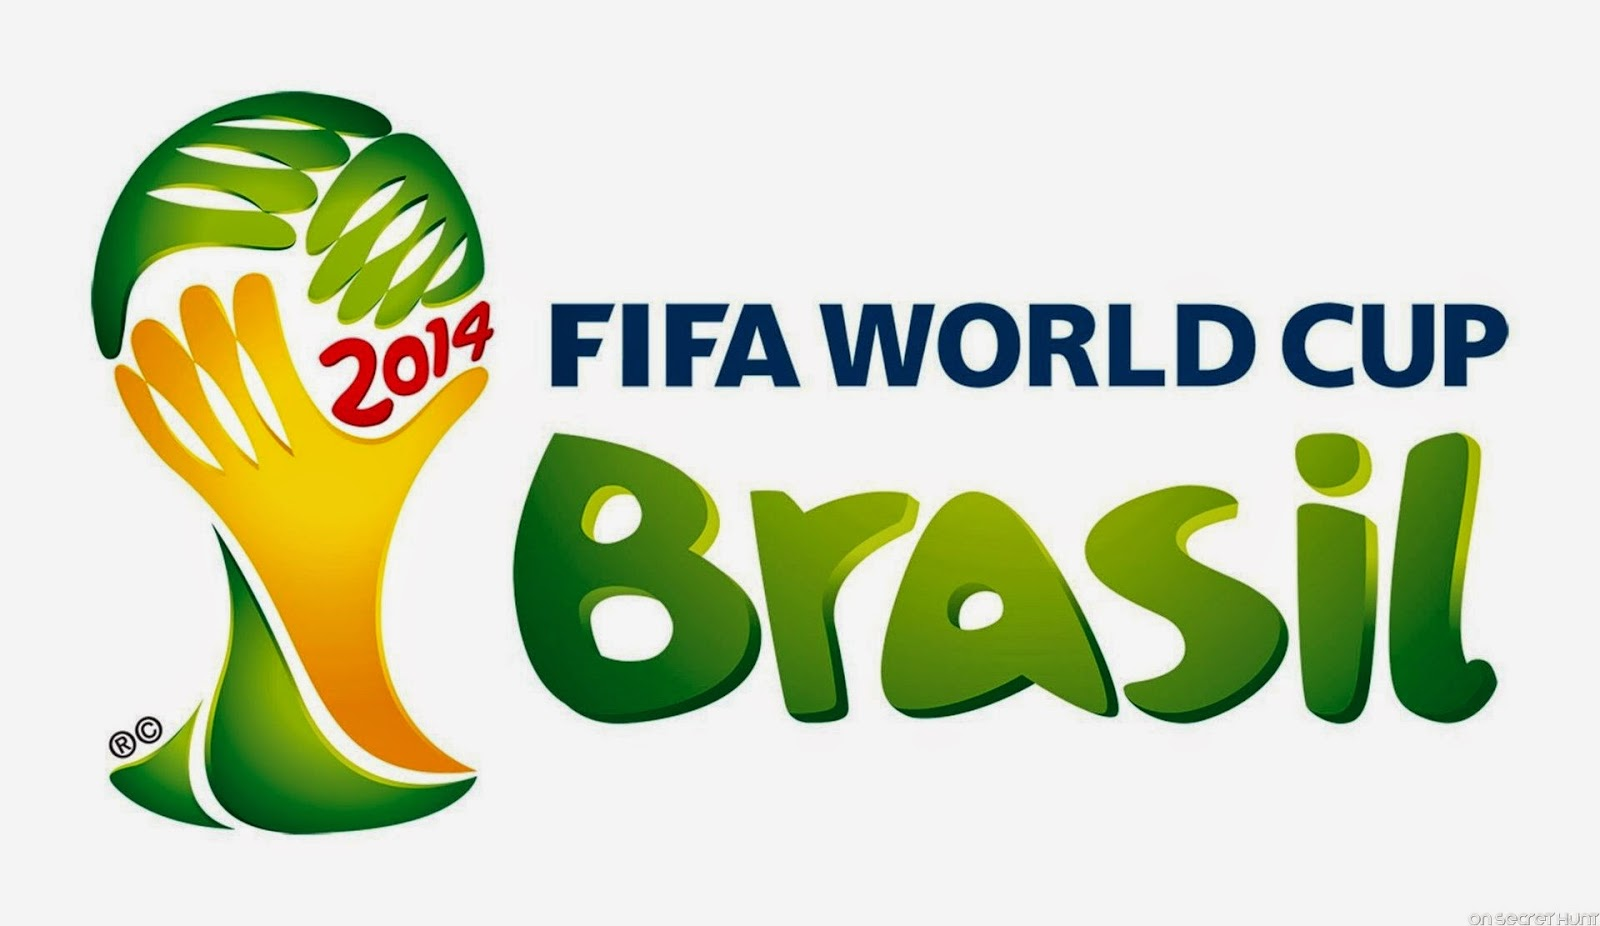 Hashflag features, World cup fever, World Cup 2014, Fifa World cup 2014